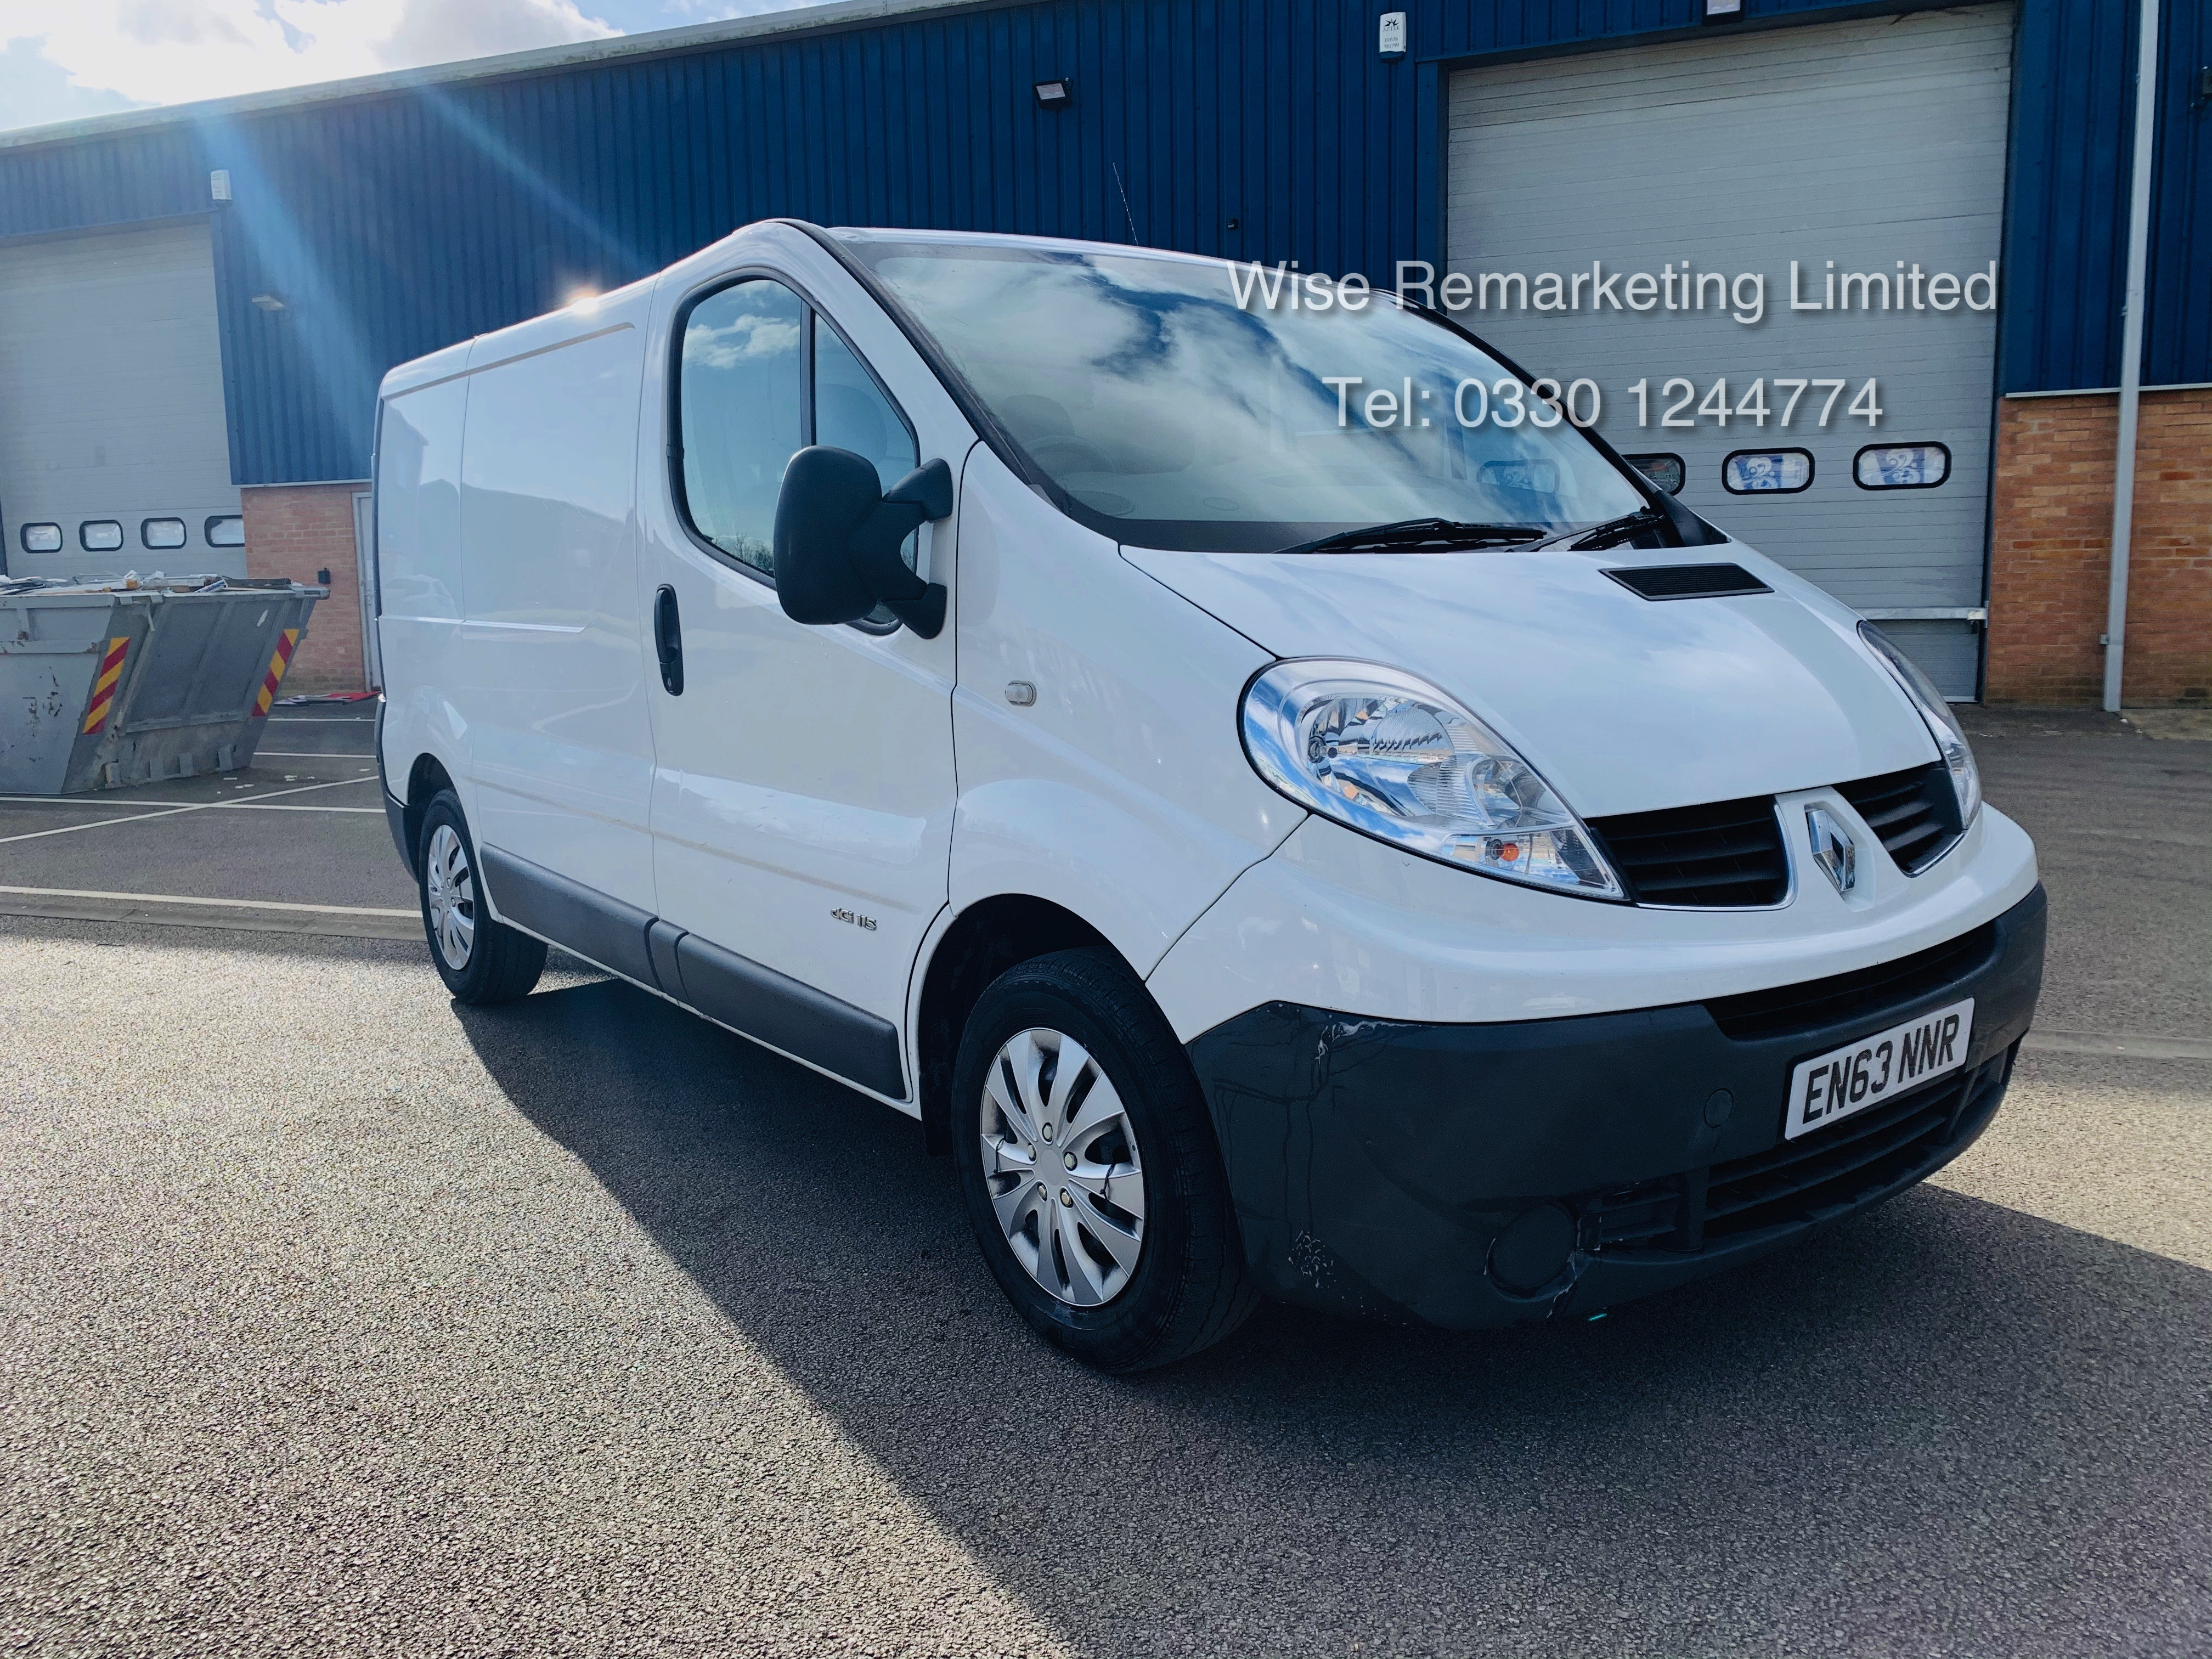 Renault Trafic 2.0 DCI (115 BHP) - 6 Speed - 2014 Reg - Ply Lined -